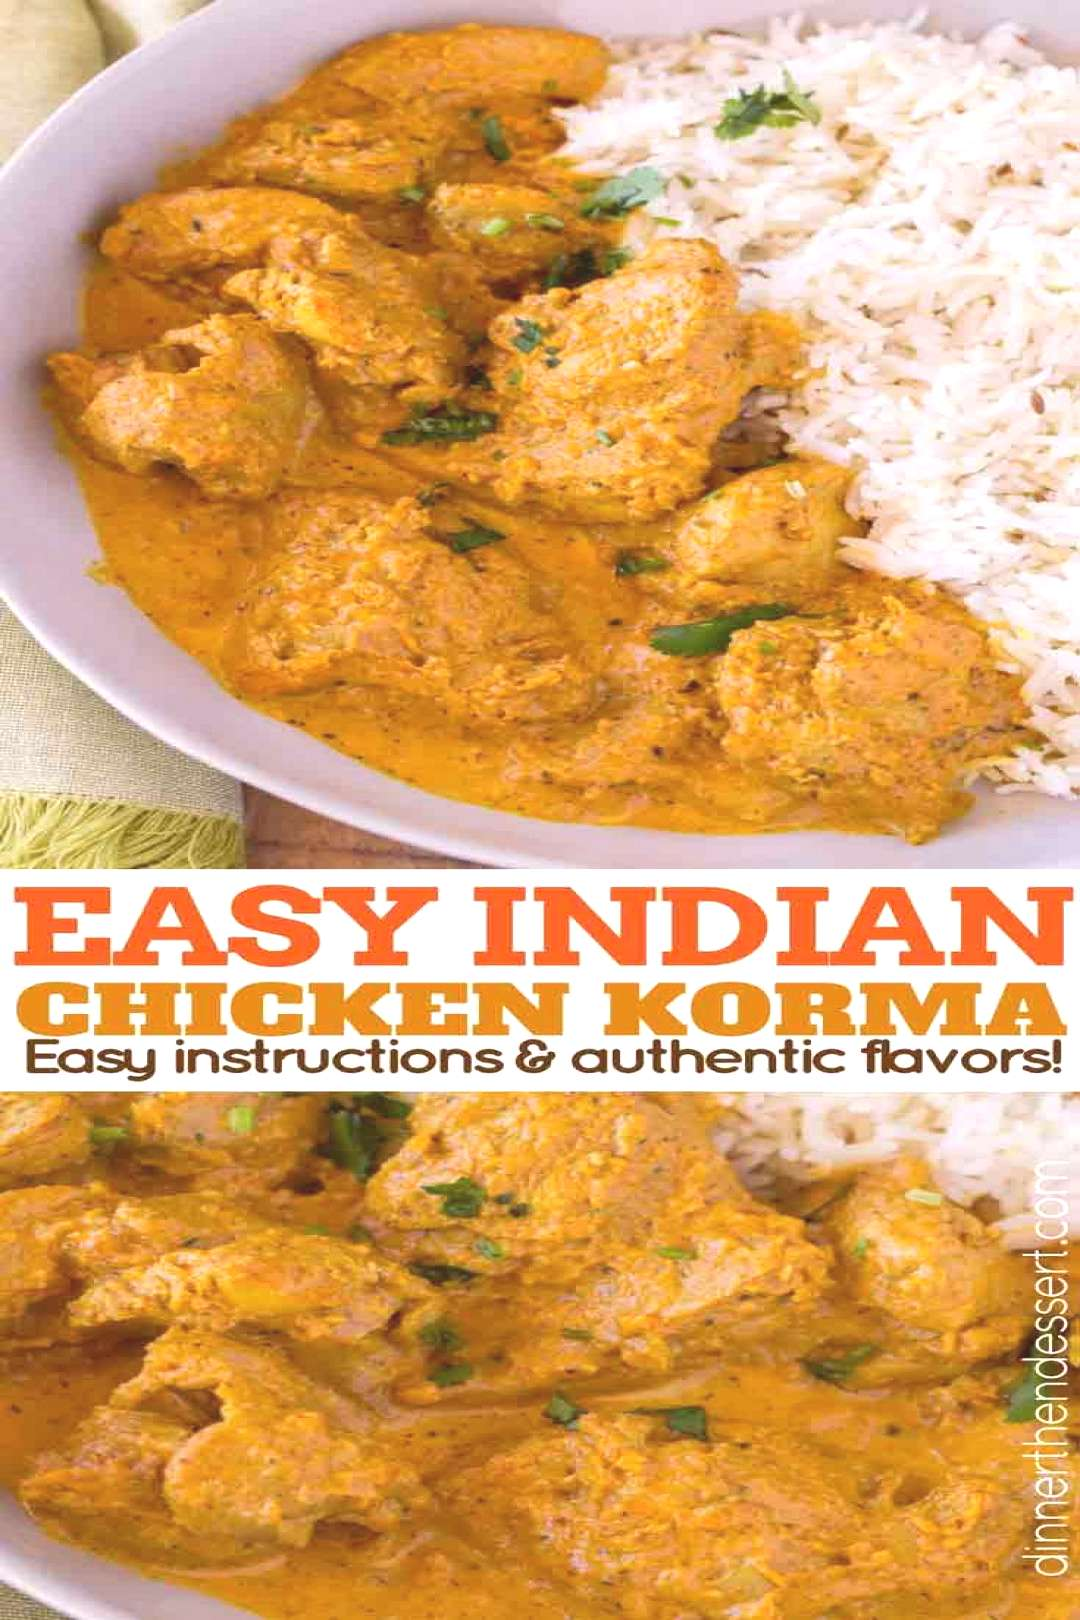 Chicken Korma is a traditional Indian dish that is light and flavorful almond curry made with tomat